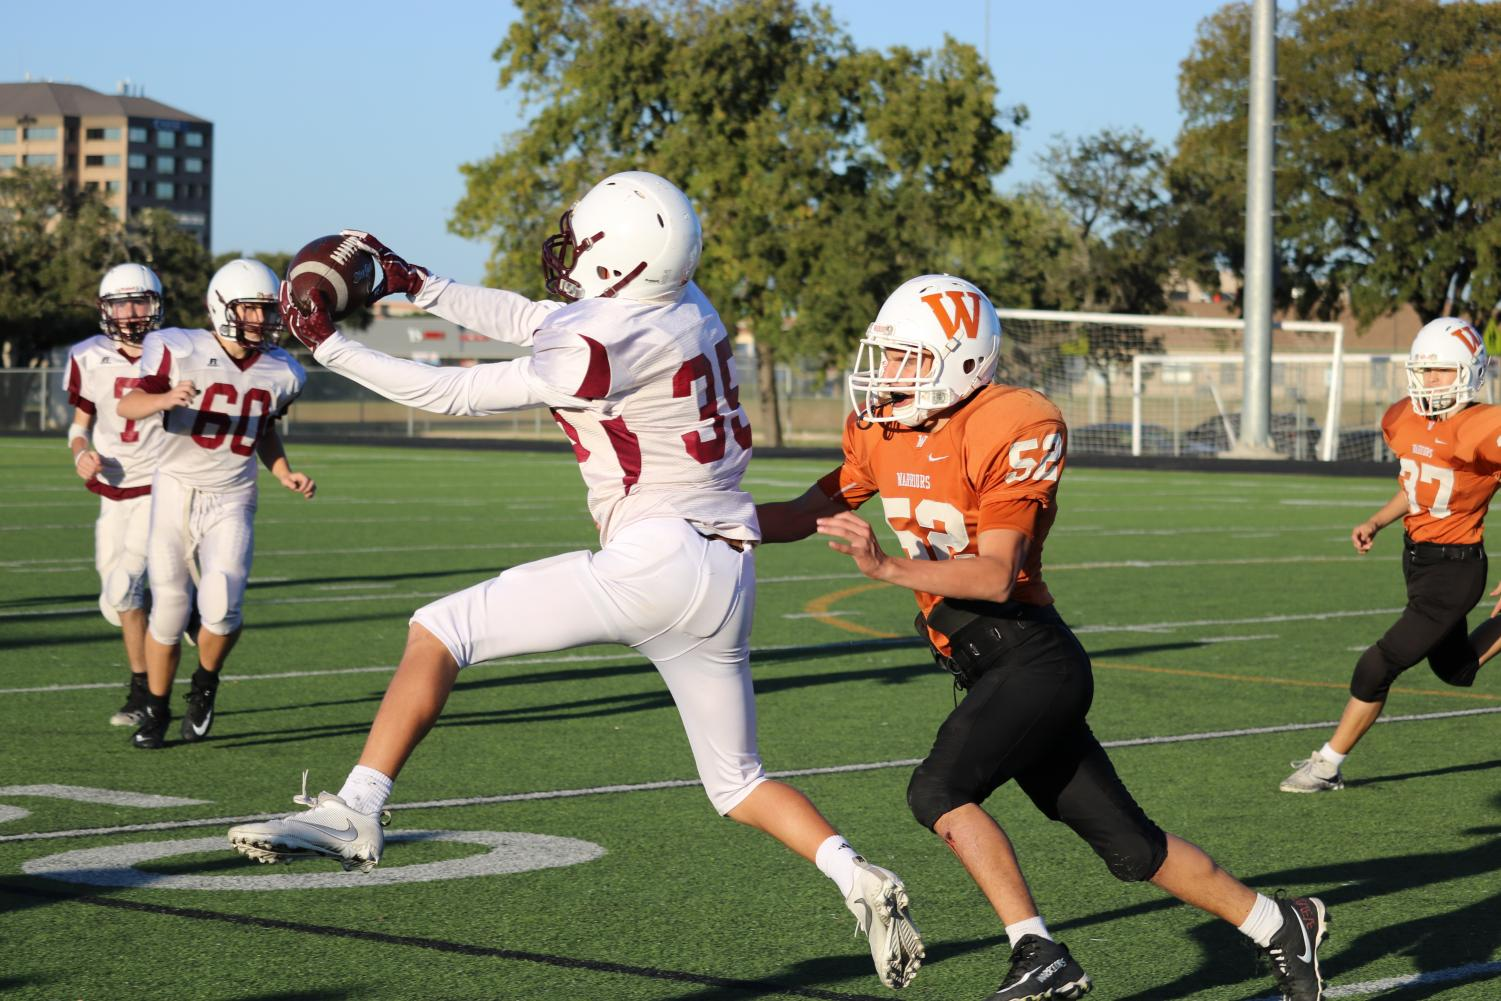 Julian+Garcia+%2721+takes+down+one+of+the+Dragons%27+wide+receivers+moments+after+they+catch+the+ball.+